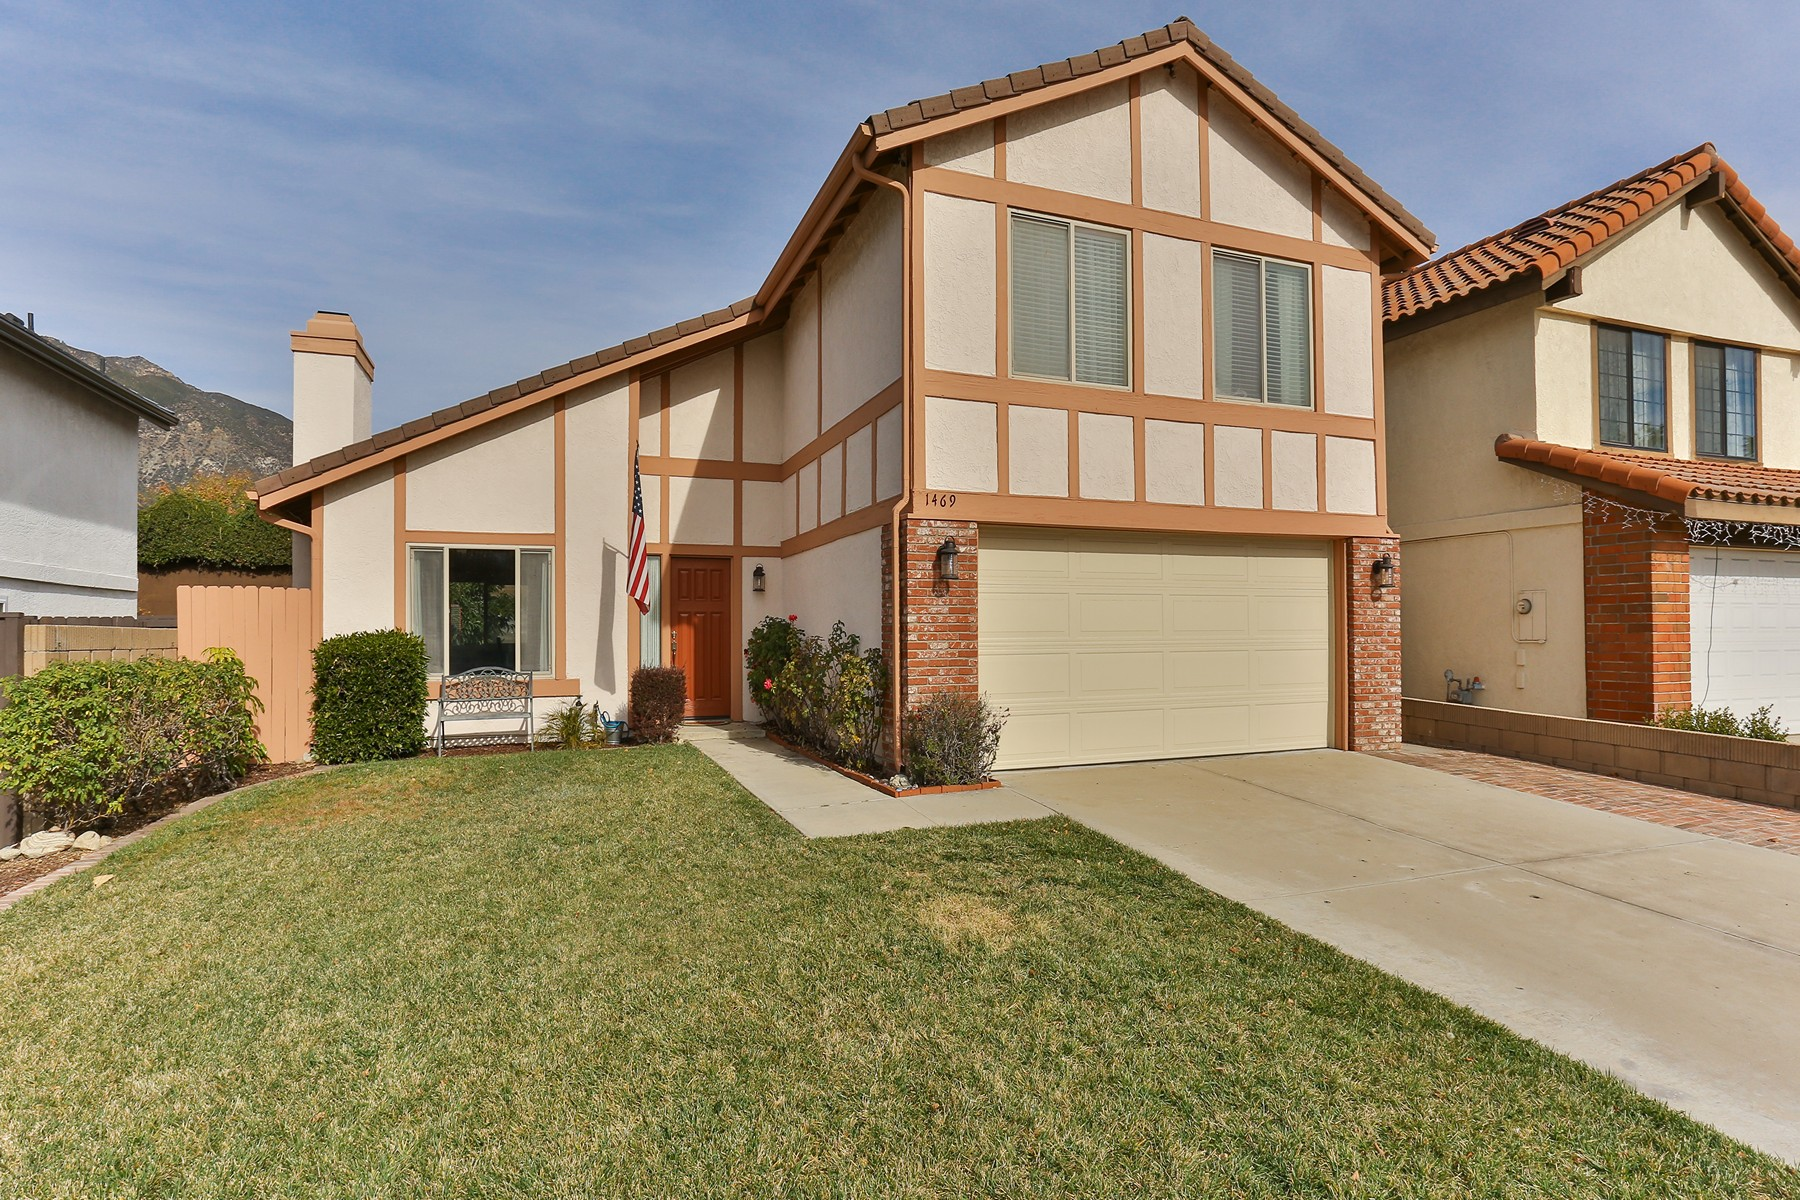 Single Family Homes for Sale at 1469 Marigold Street, Upland, CA 91784 1469 Marigold Street Upland, California 91784 United States